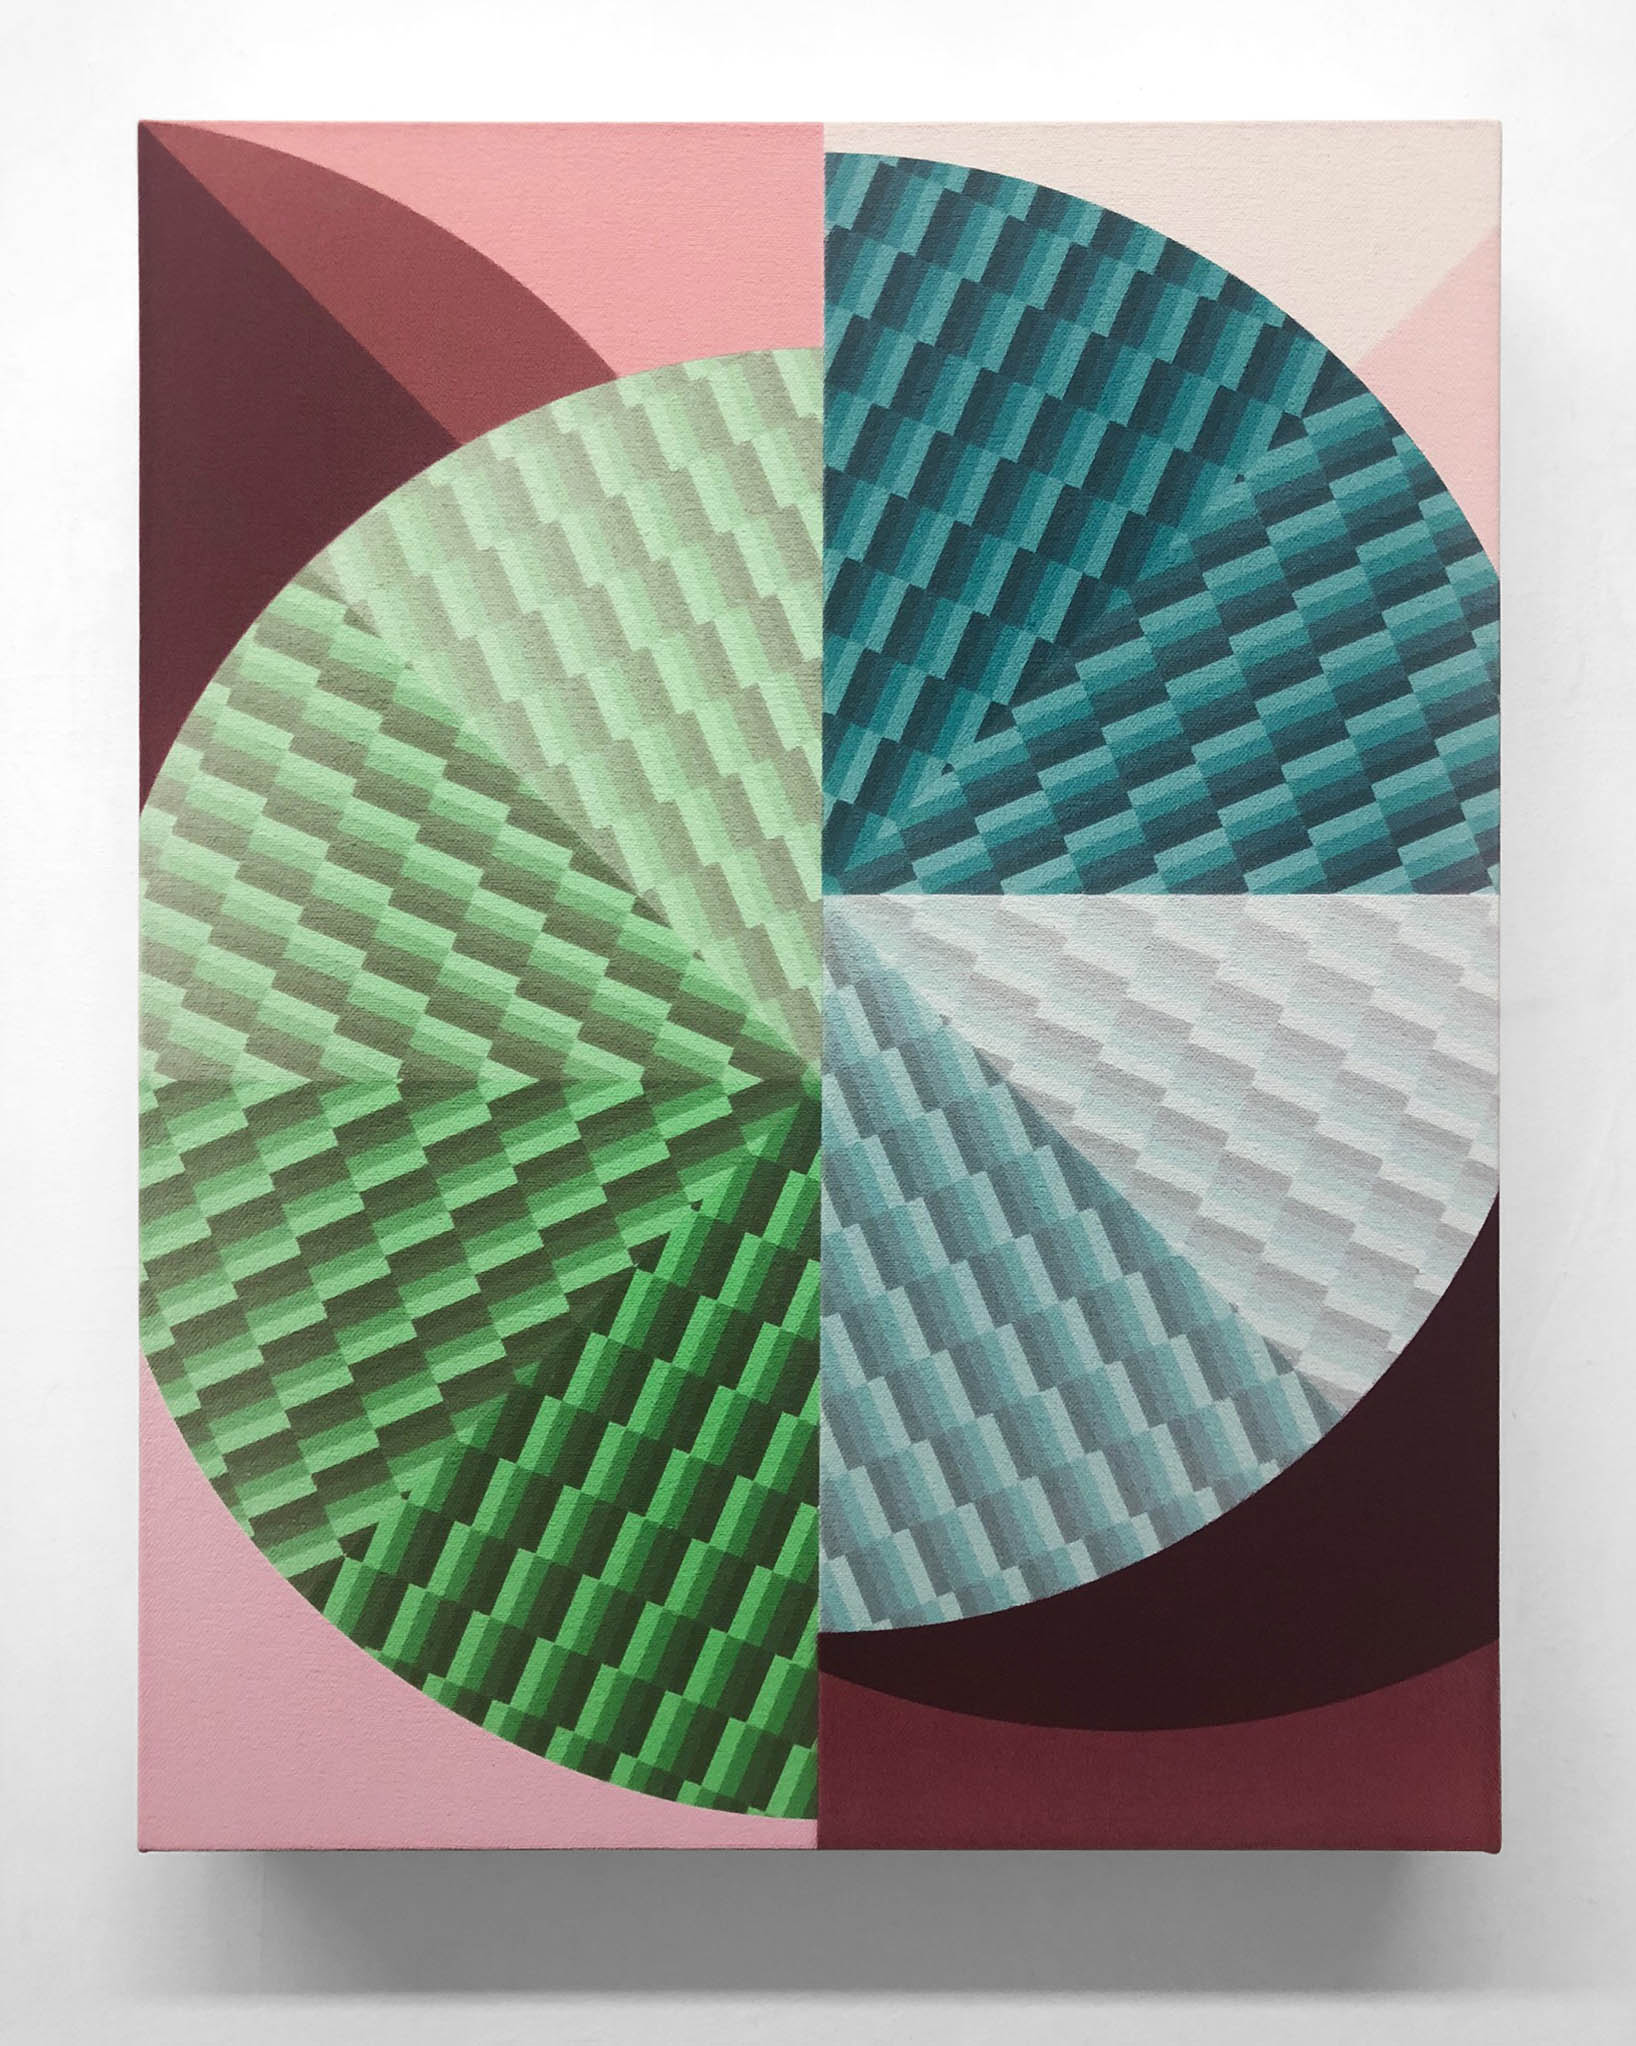 Tone Parallel Nº. 2  2019 Acrylic on canvas over panel 14 x 11 inches